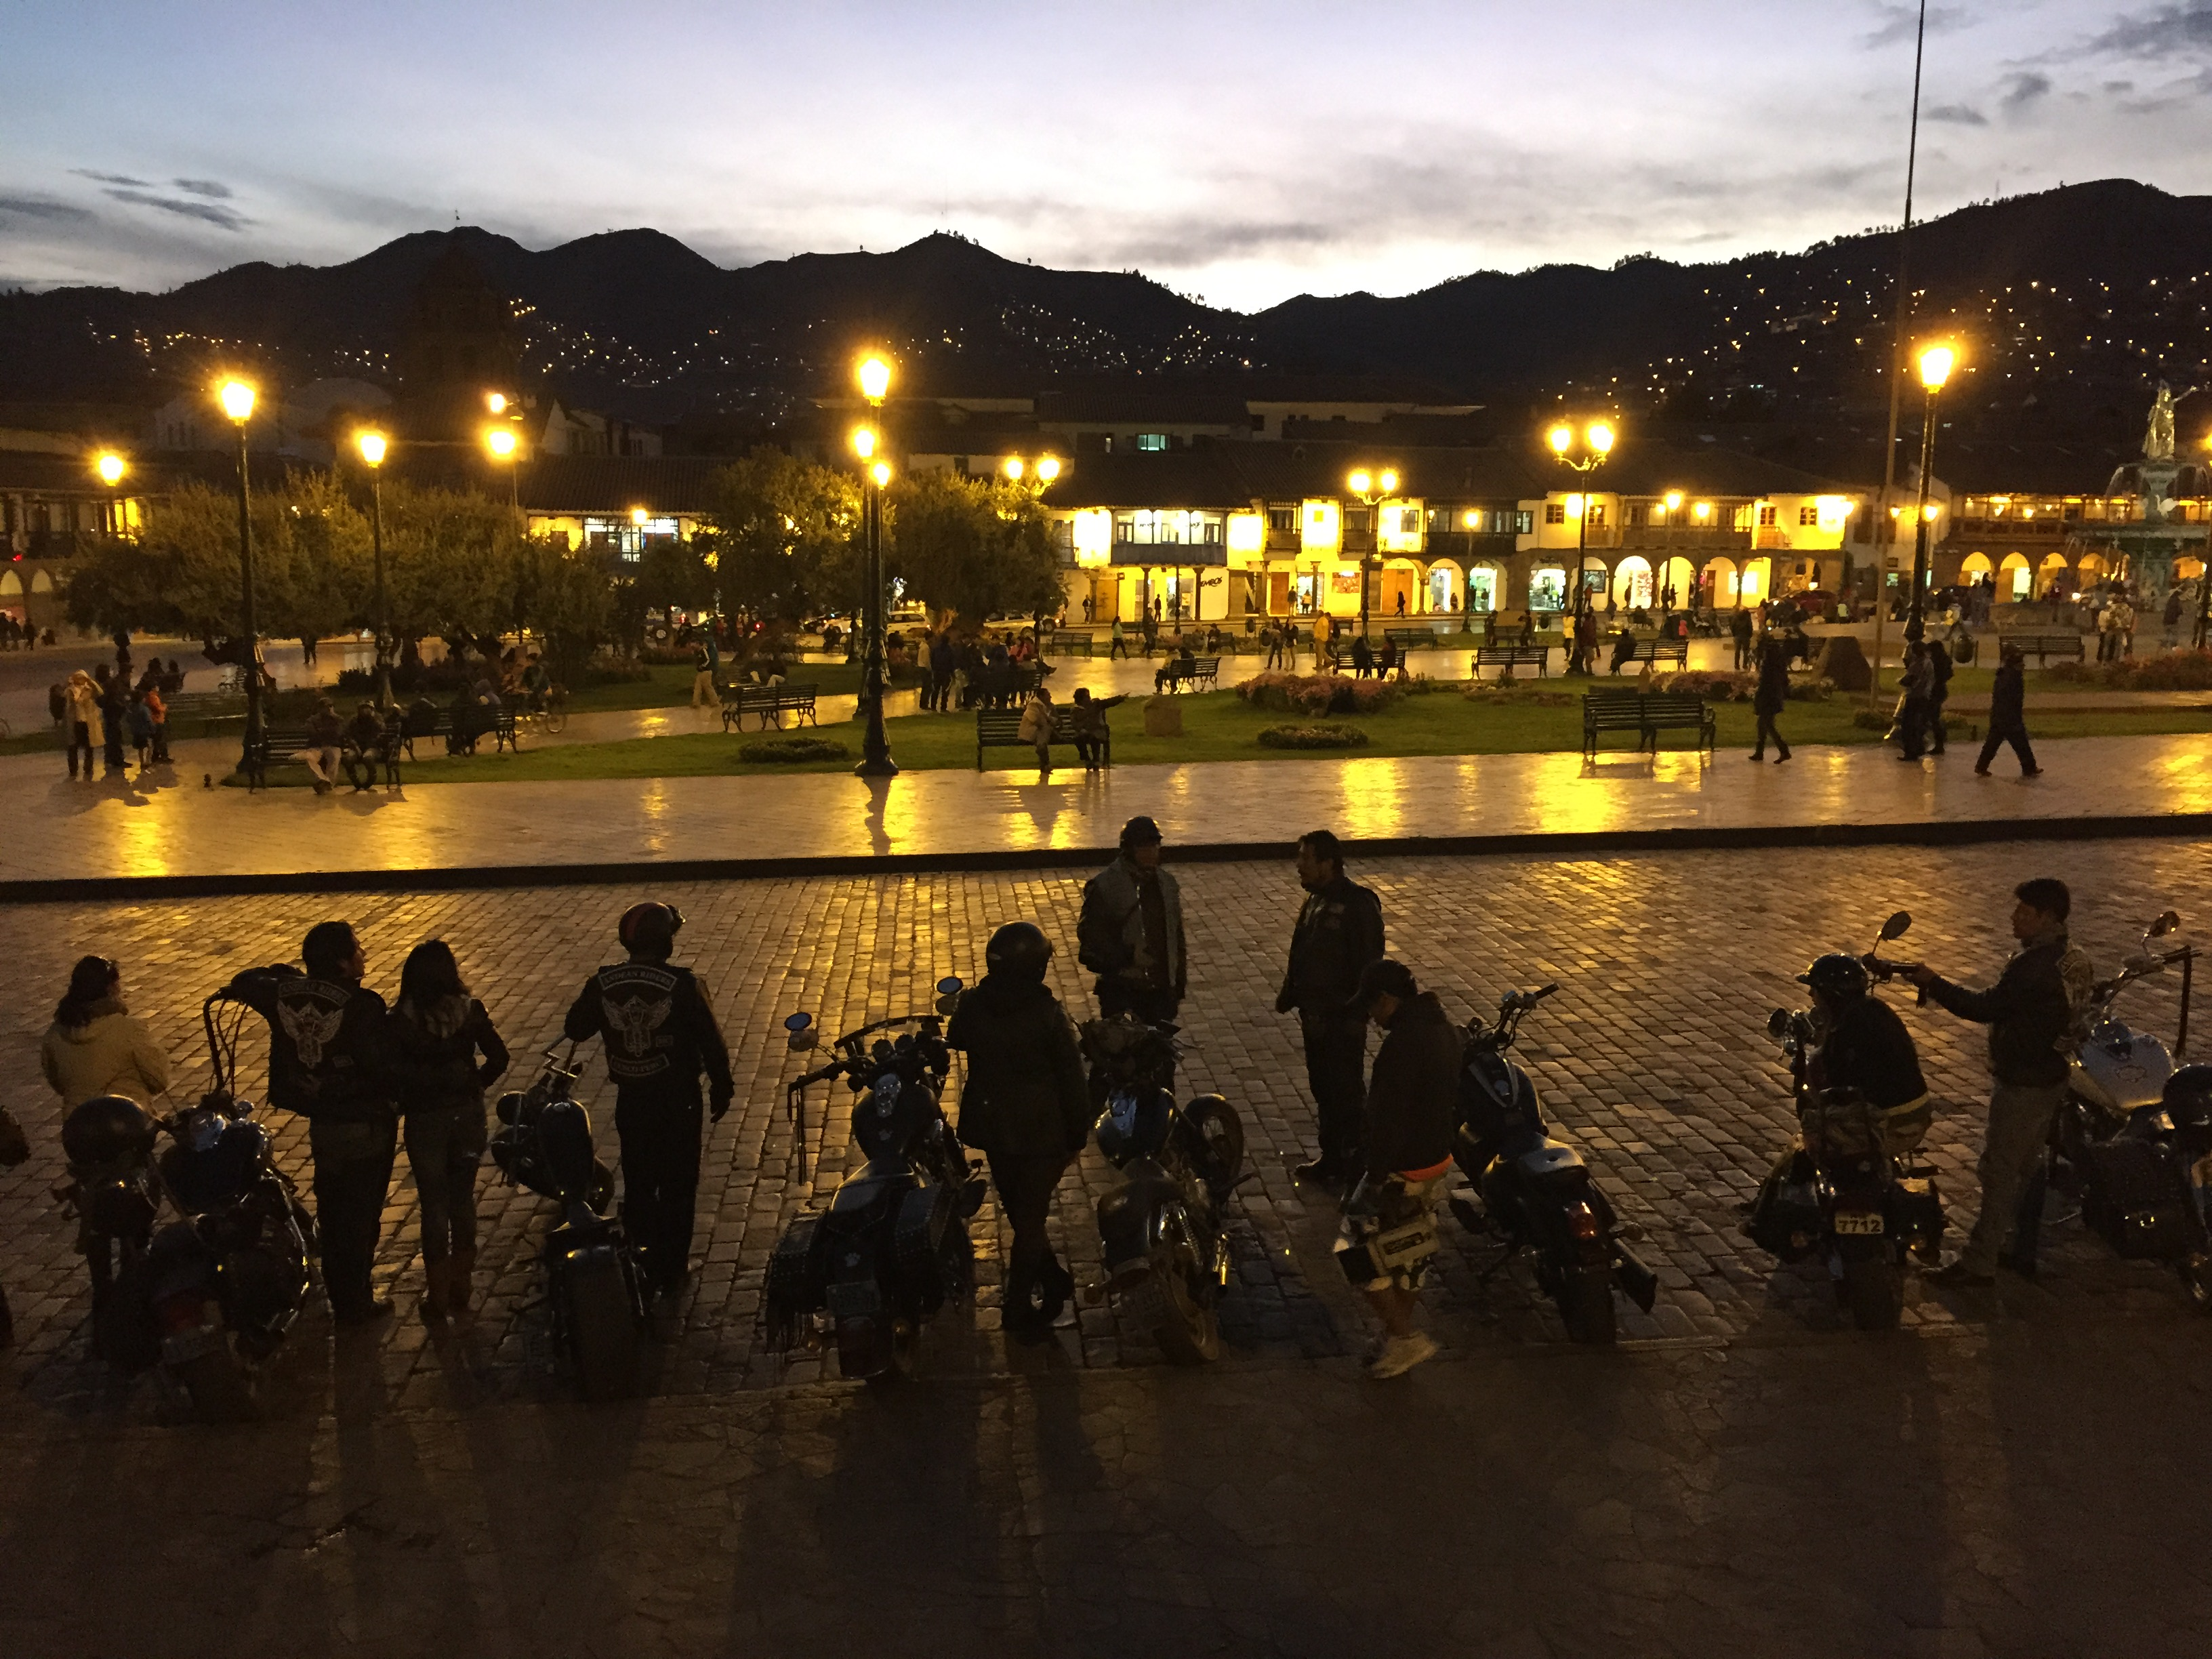 Motorcycle Gang in Cusco, Peru